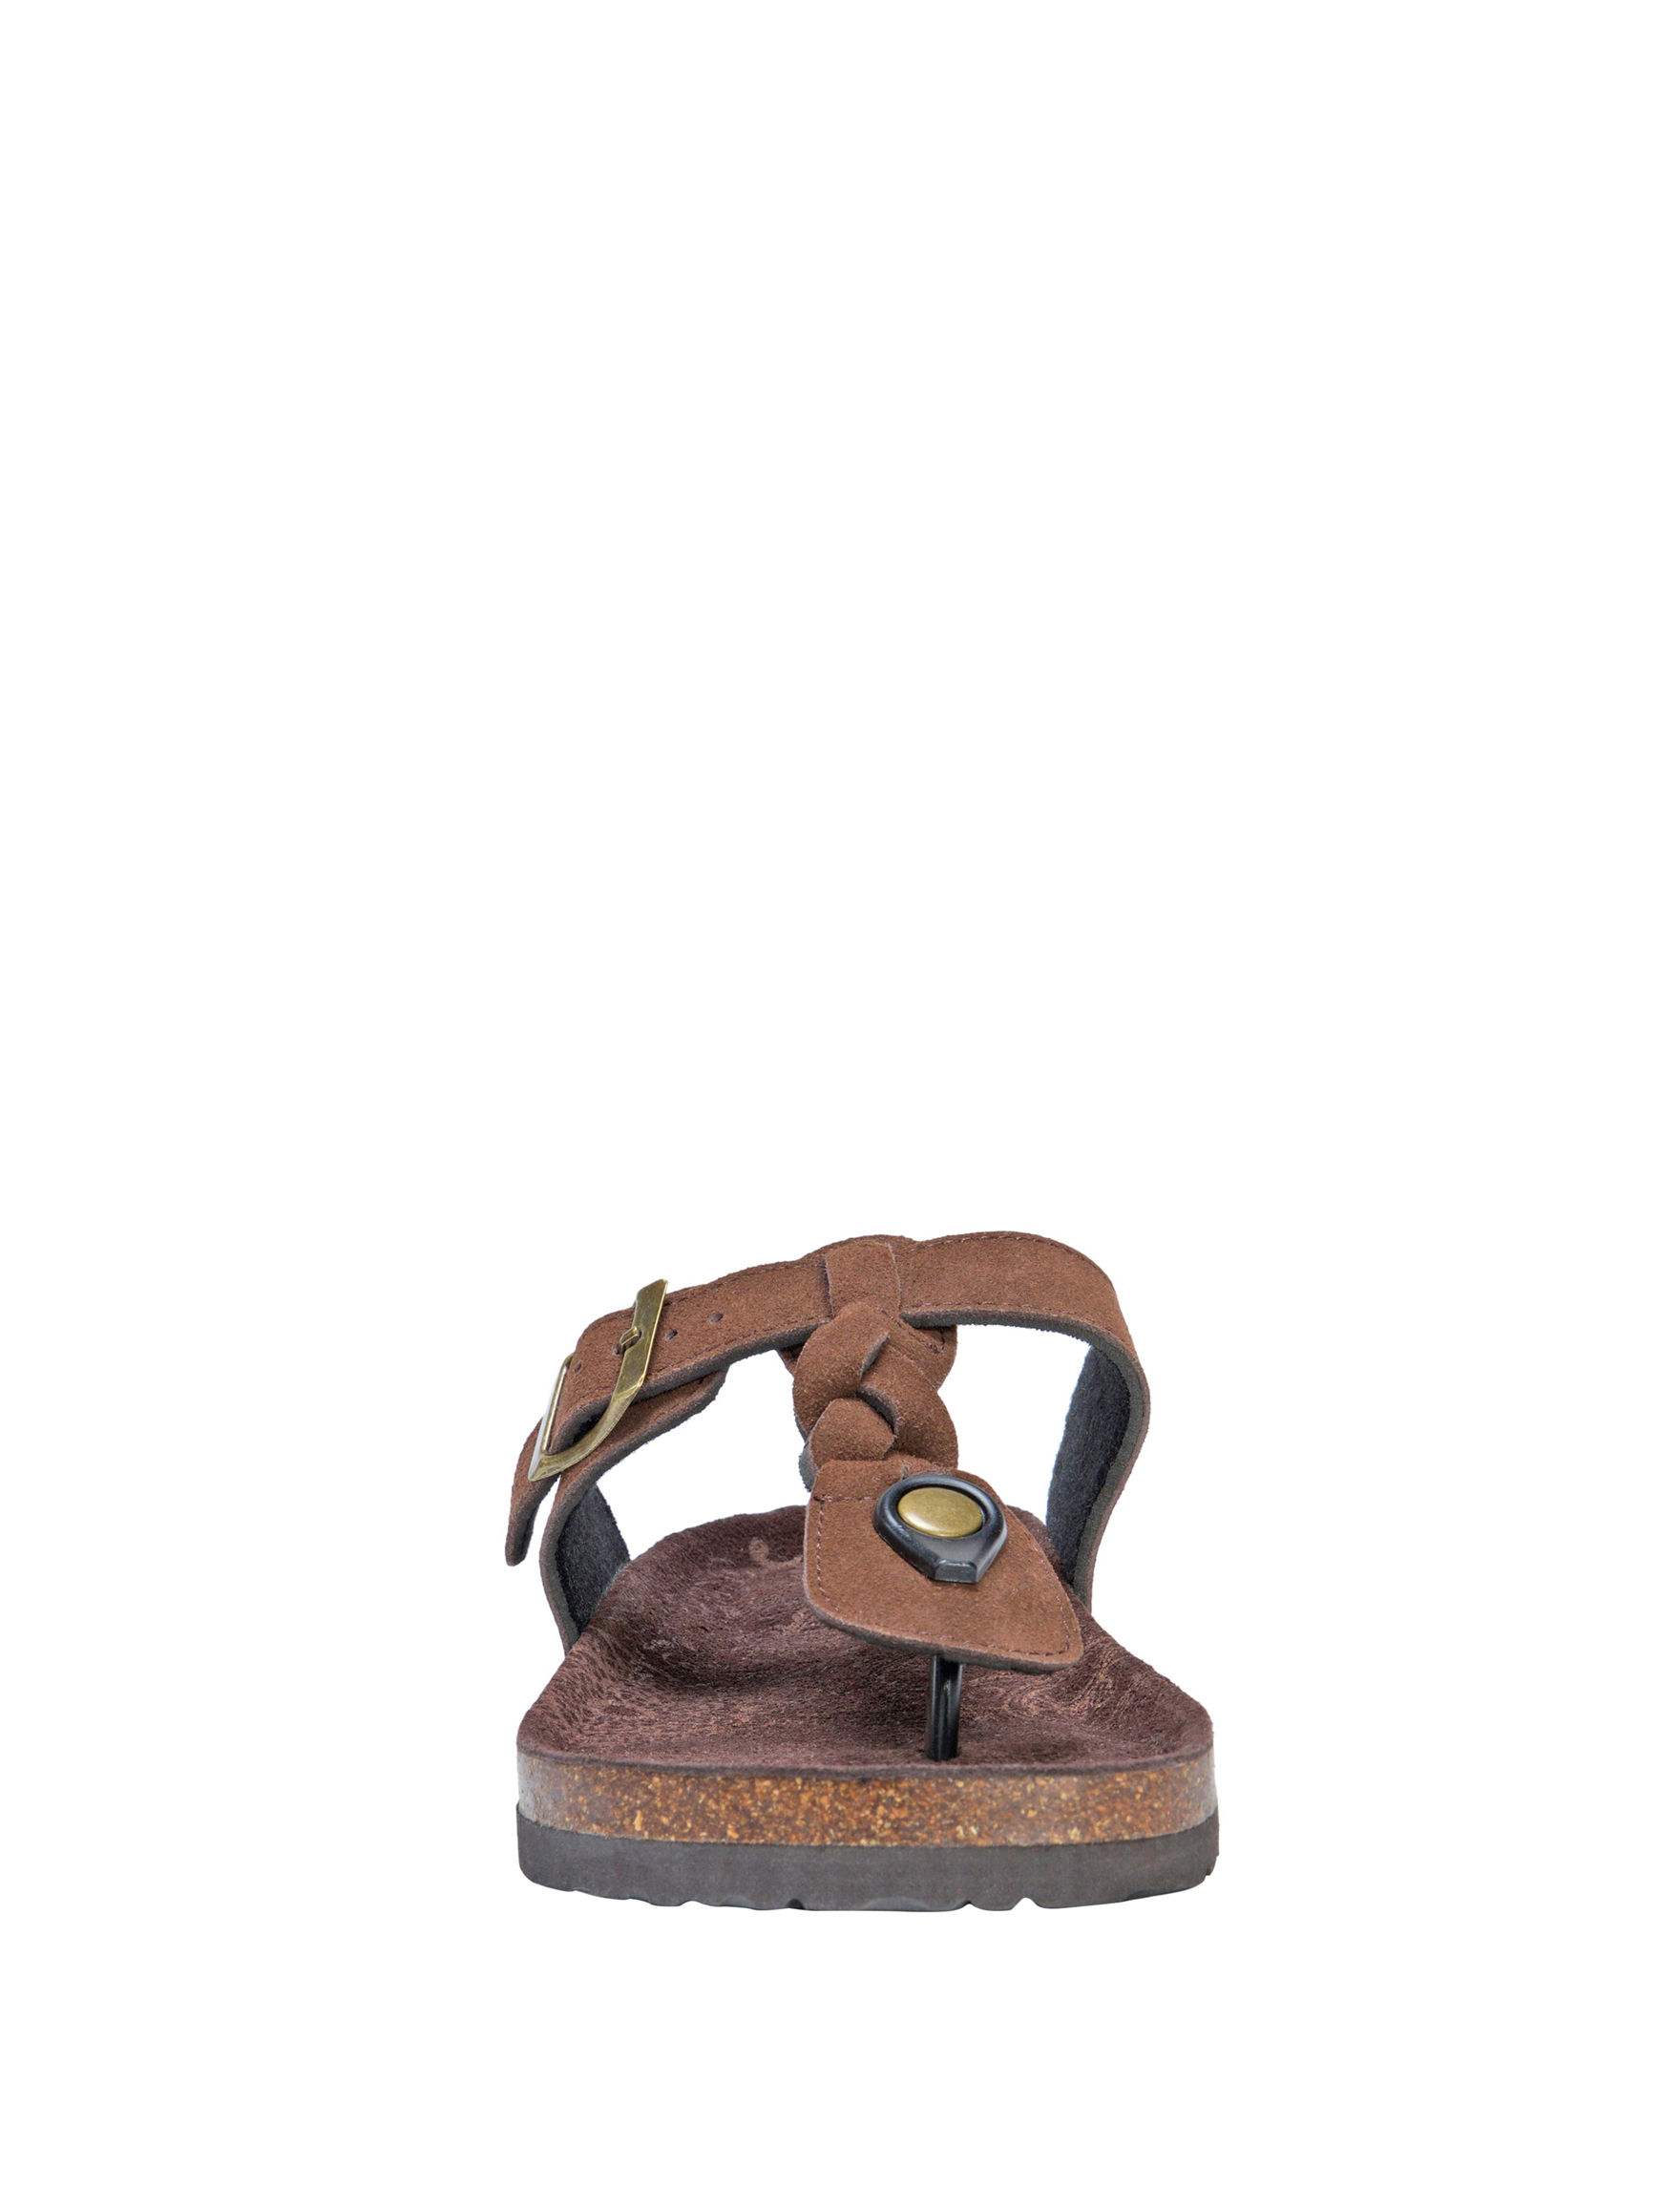 Muk Luks Brown Flat Sandals Slide Sandals